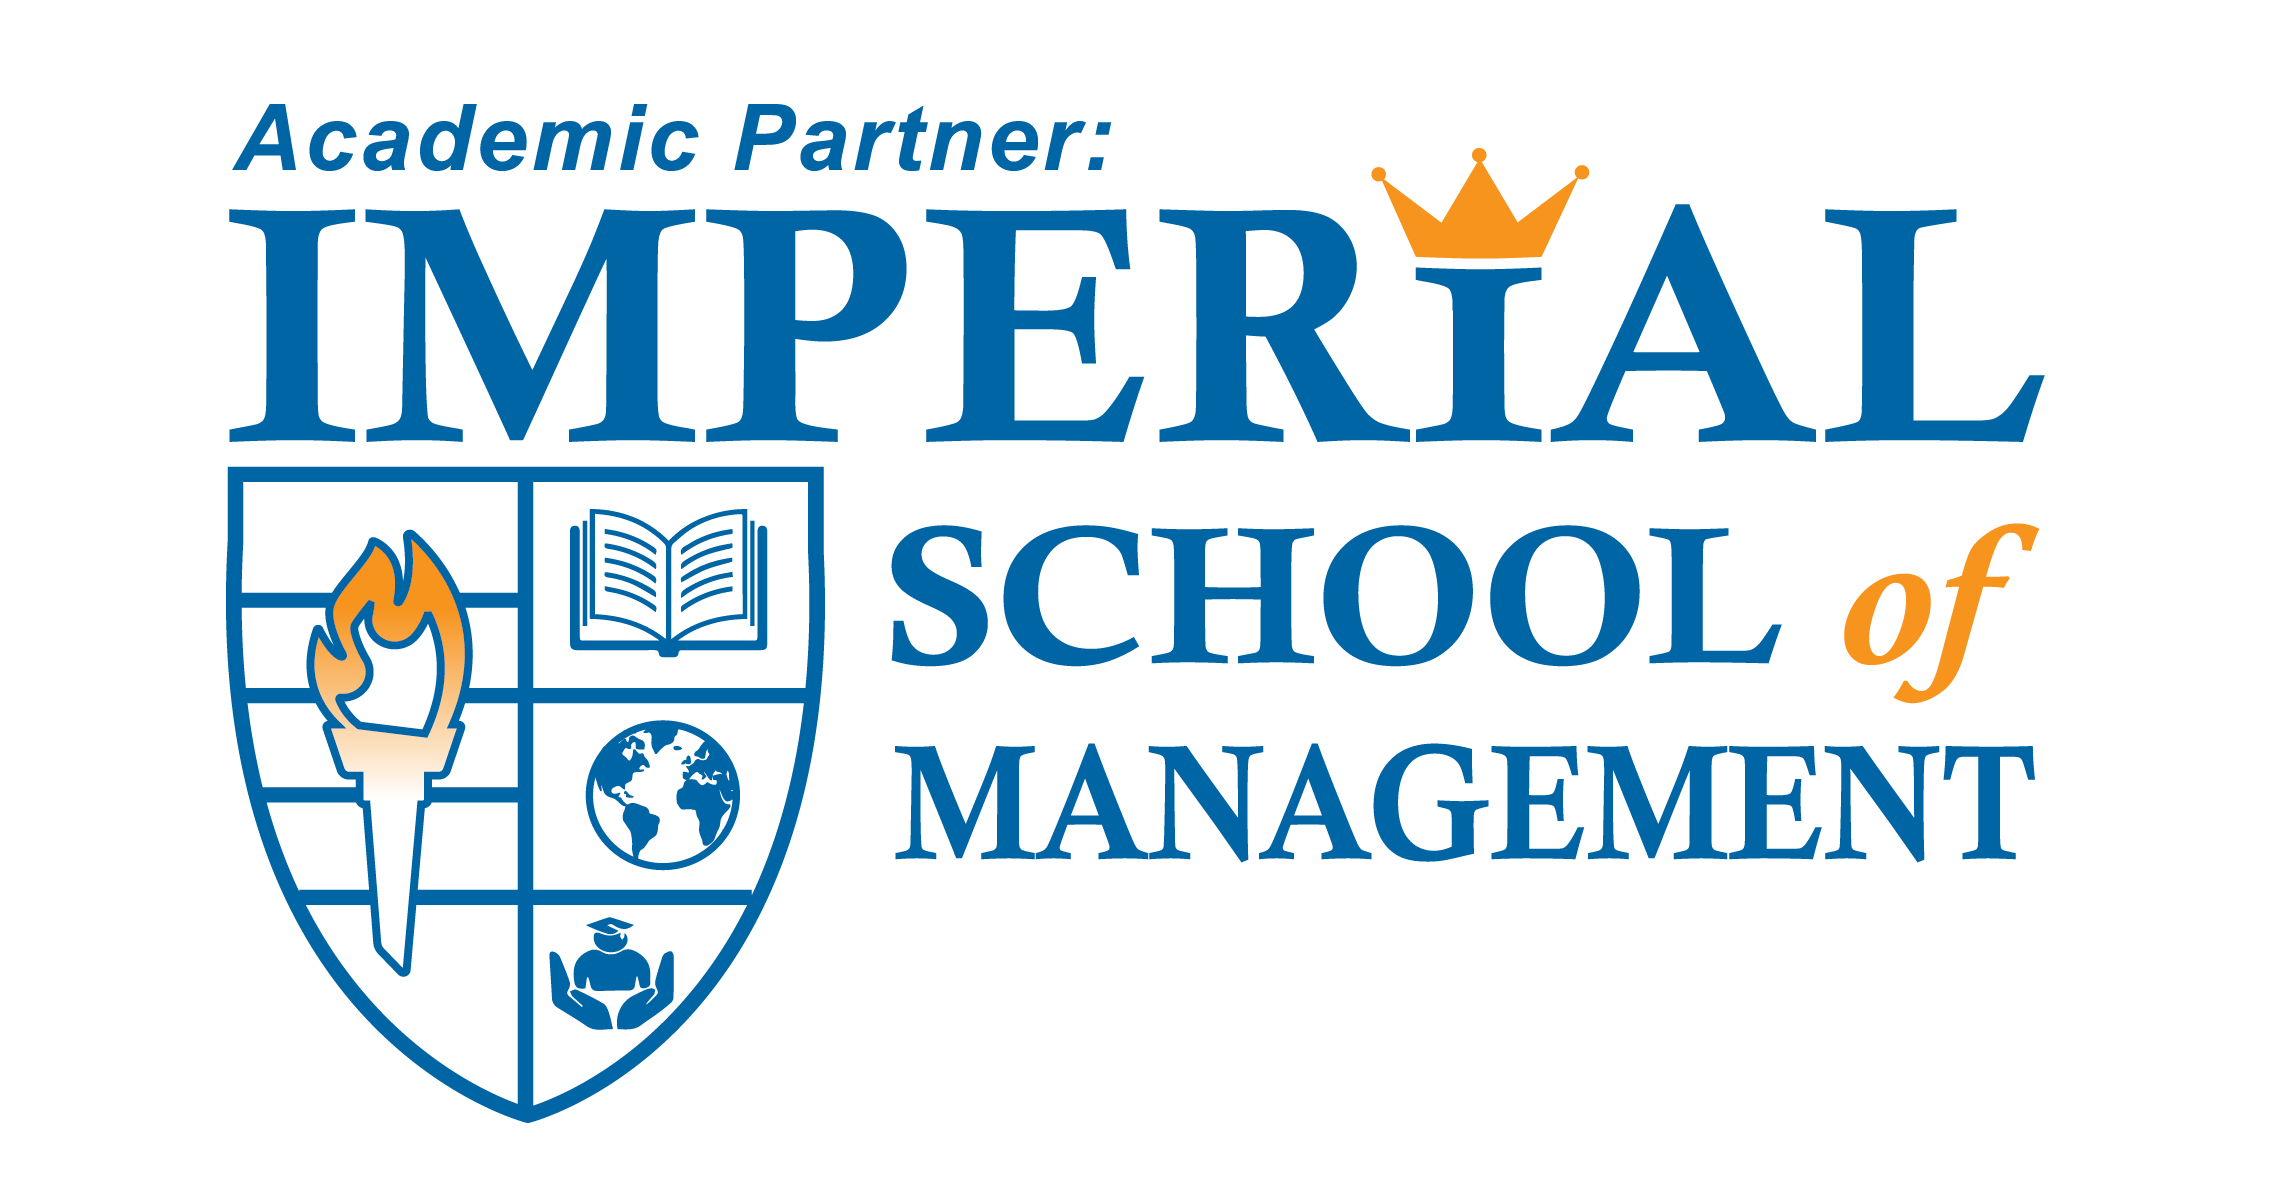 More about Imperial School of Management